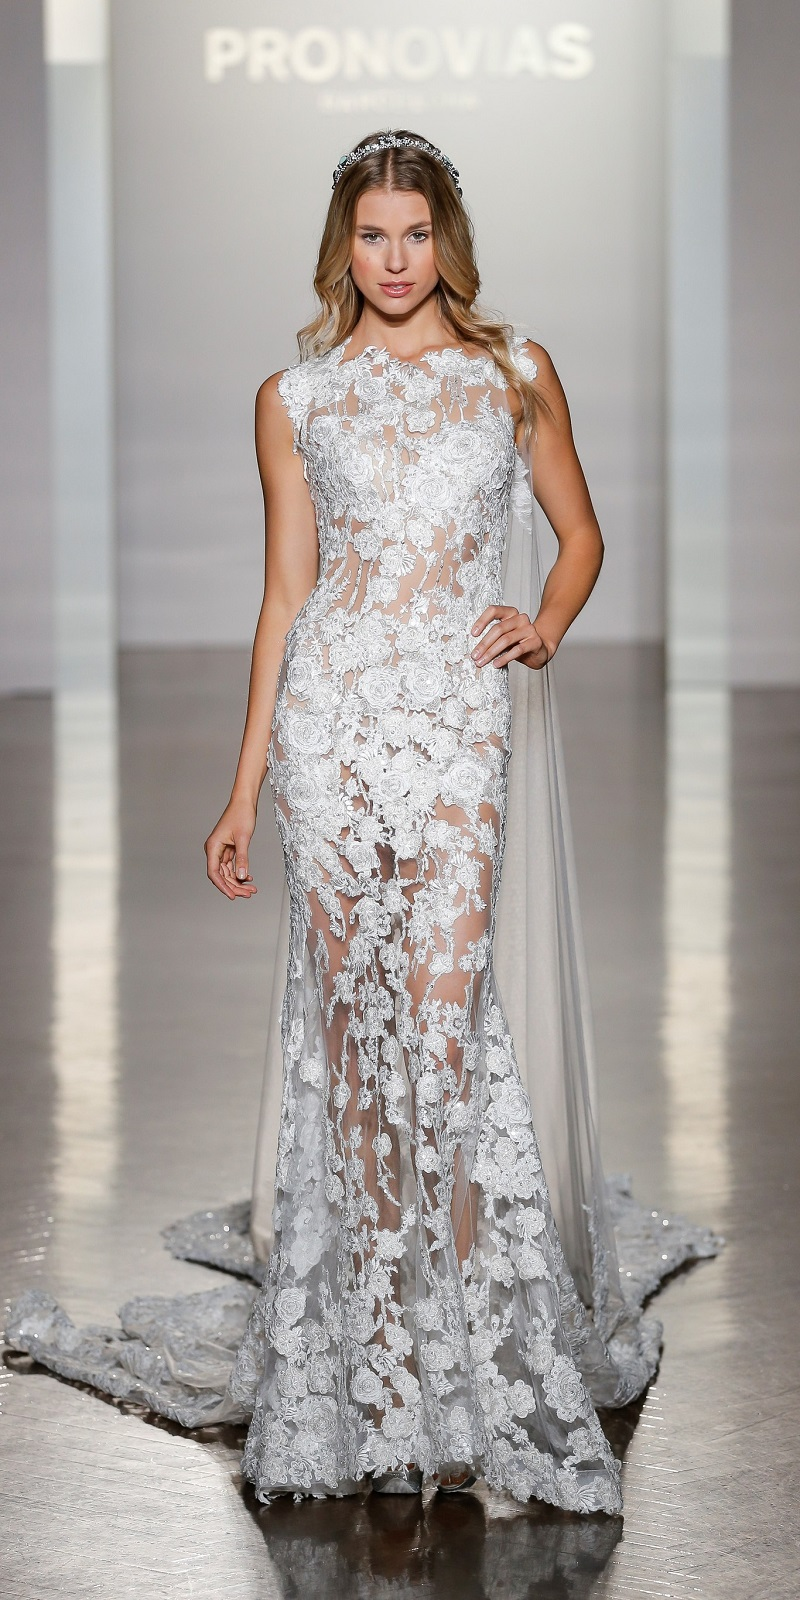 Pronovias returns to the most delicate romanticism in its collection 2017